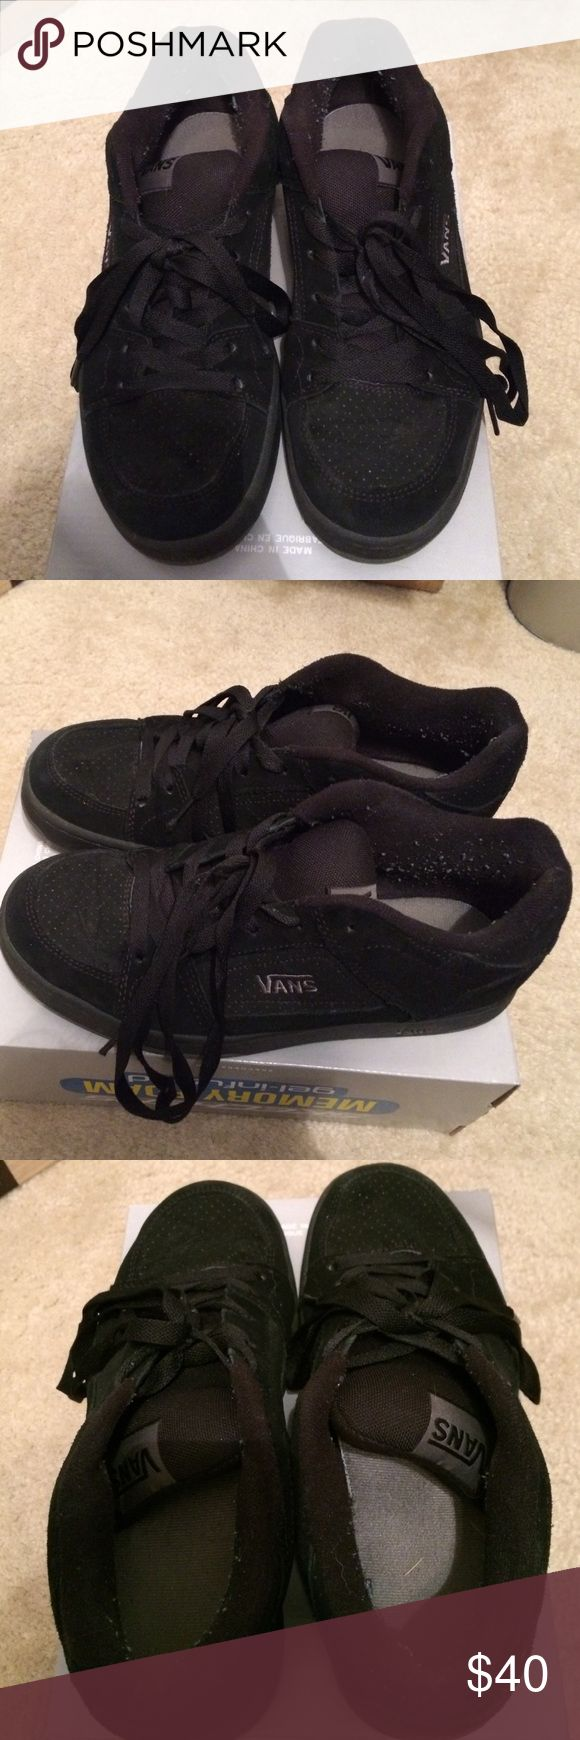 Black Vans Shoes These Vans shoes have only been worn a handful of times and are still in great condition, aside from some obvious fuzz. The box they are on does not go to them. I just don't have the original box anymore and wanted to keep them off the carpet. Vans Shoes Athletic Shoes